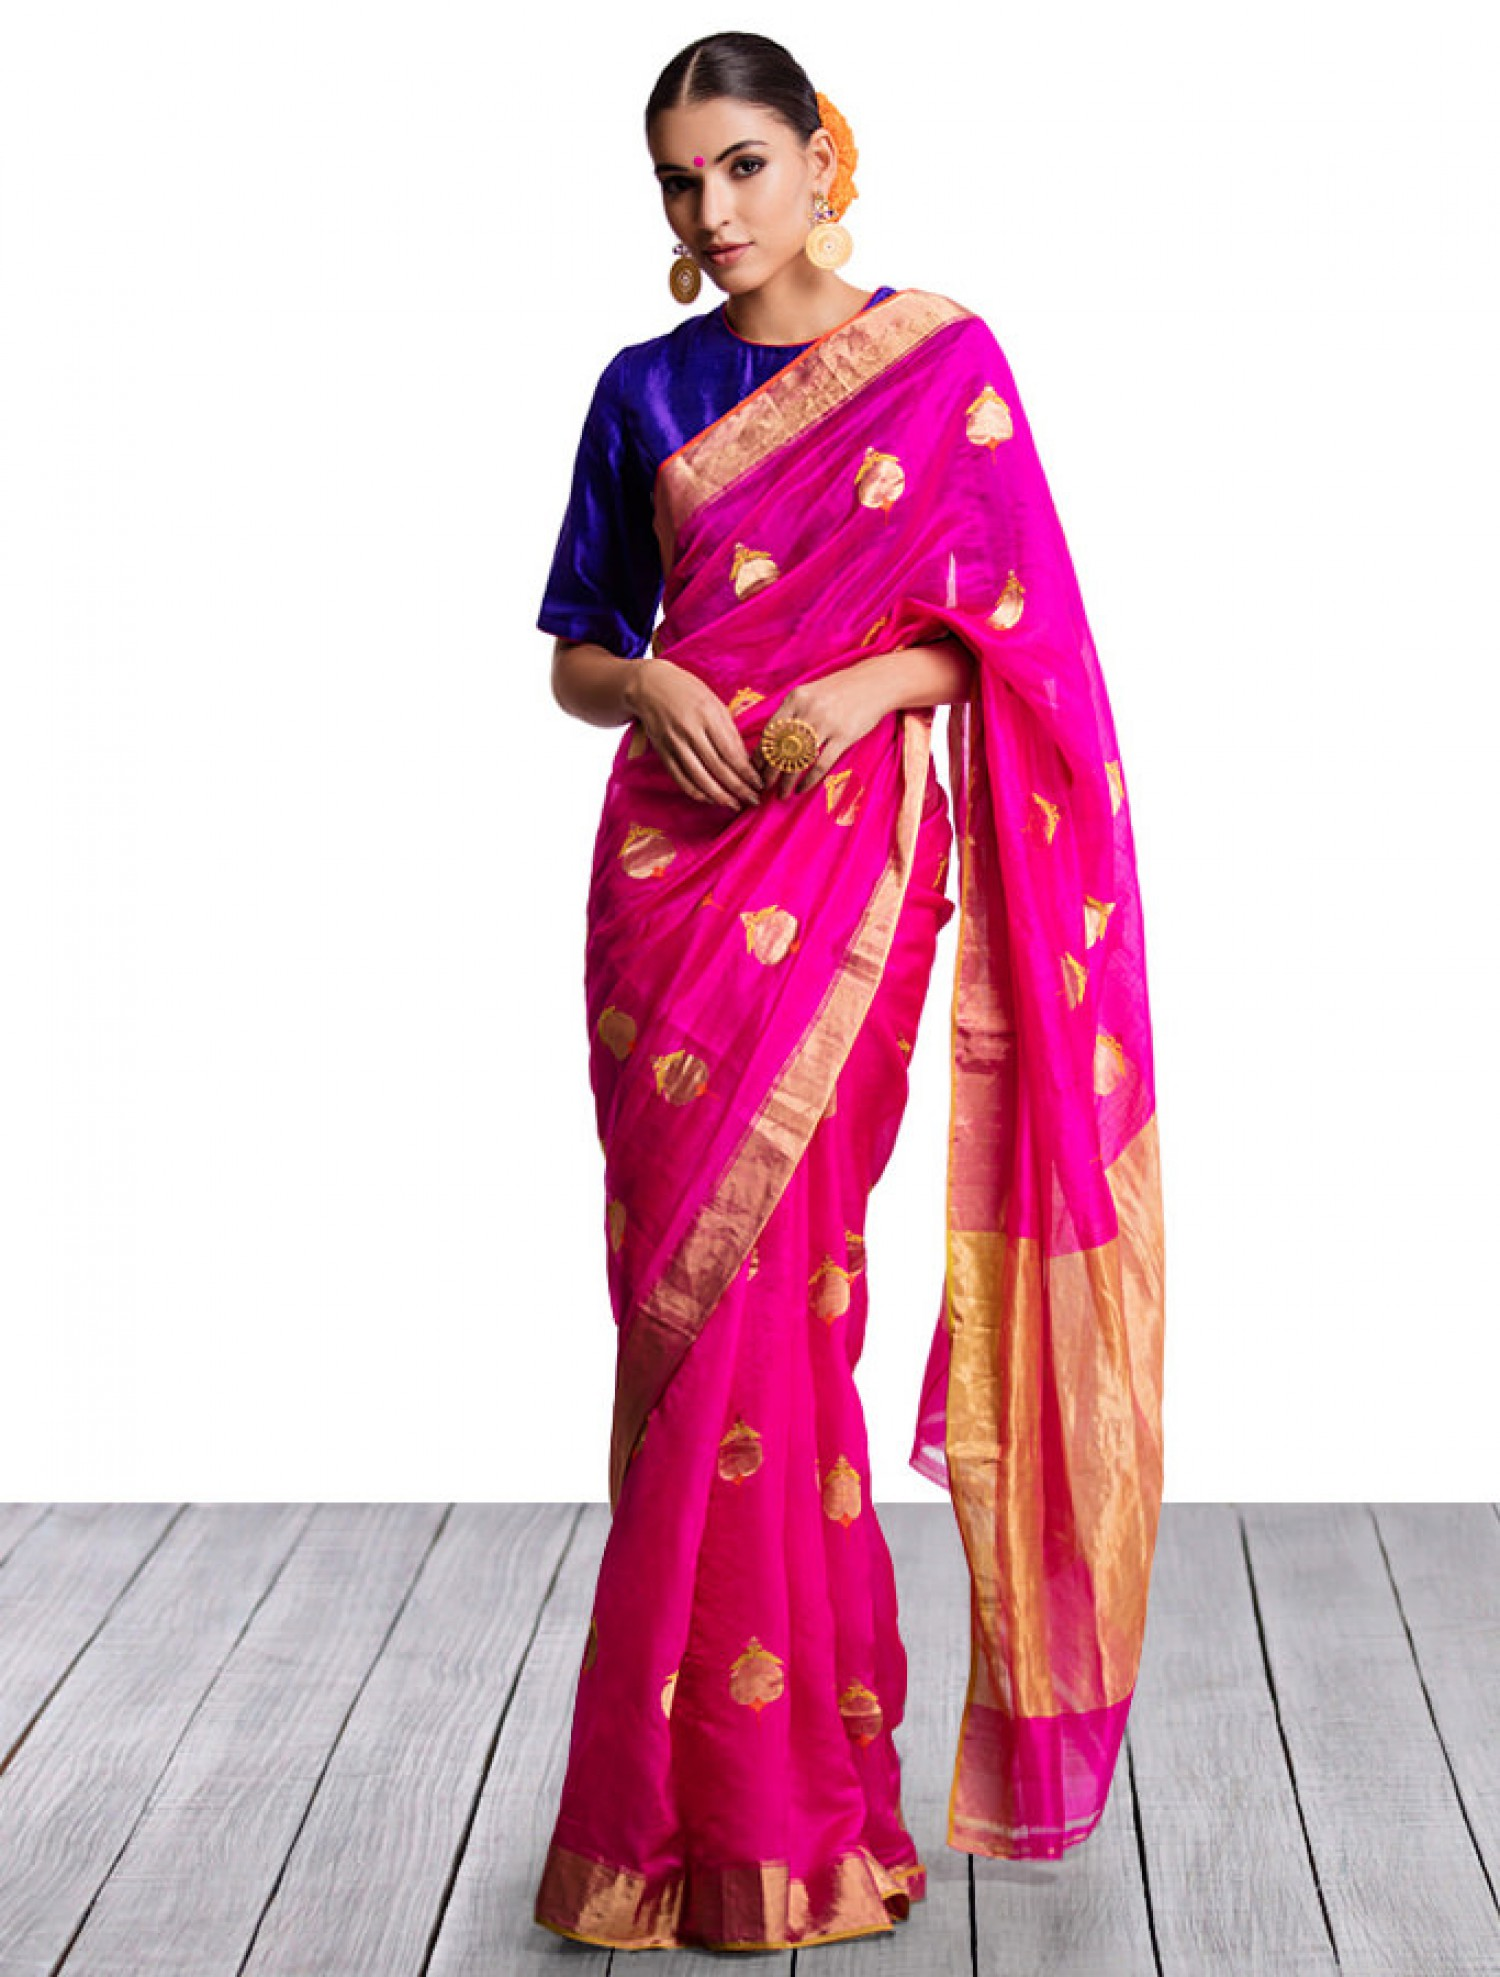 Saree clipart fashion modeling Blue blouse Indian dark Pink